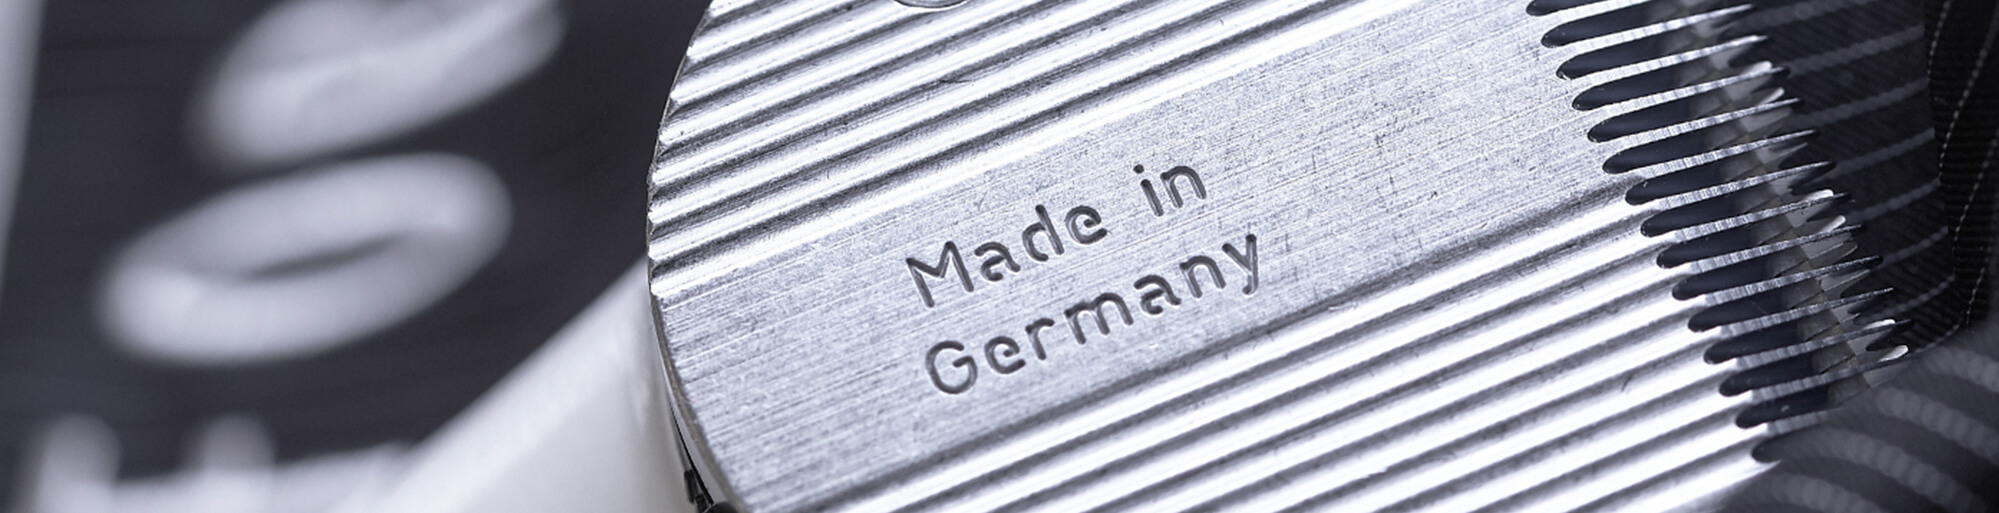 Made in Germany.jpg